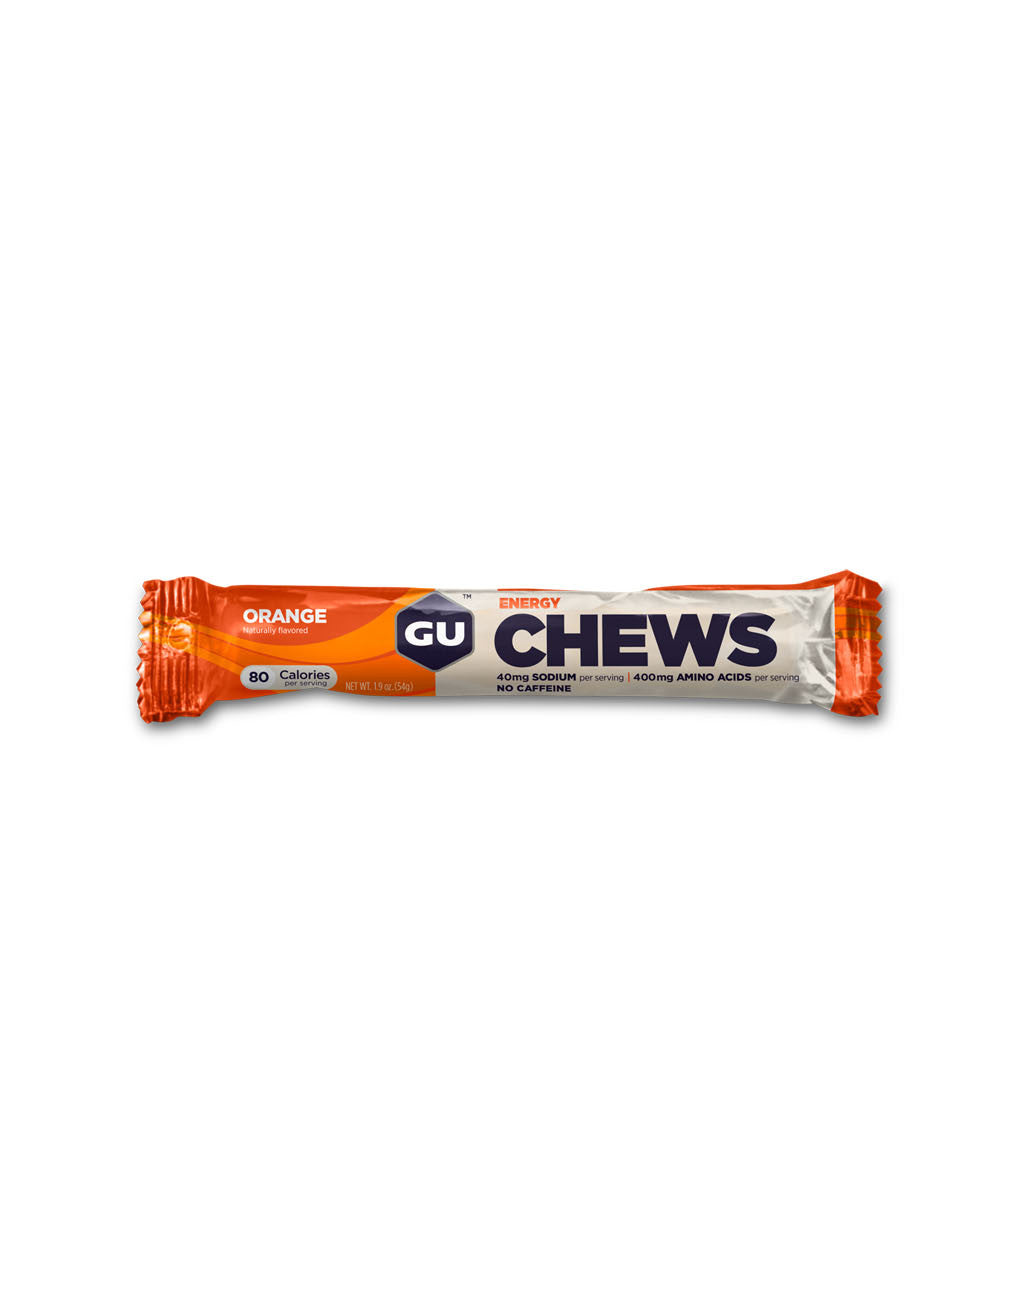 GU Energy Chews (18ct box)Orange_master_image